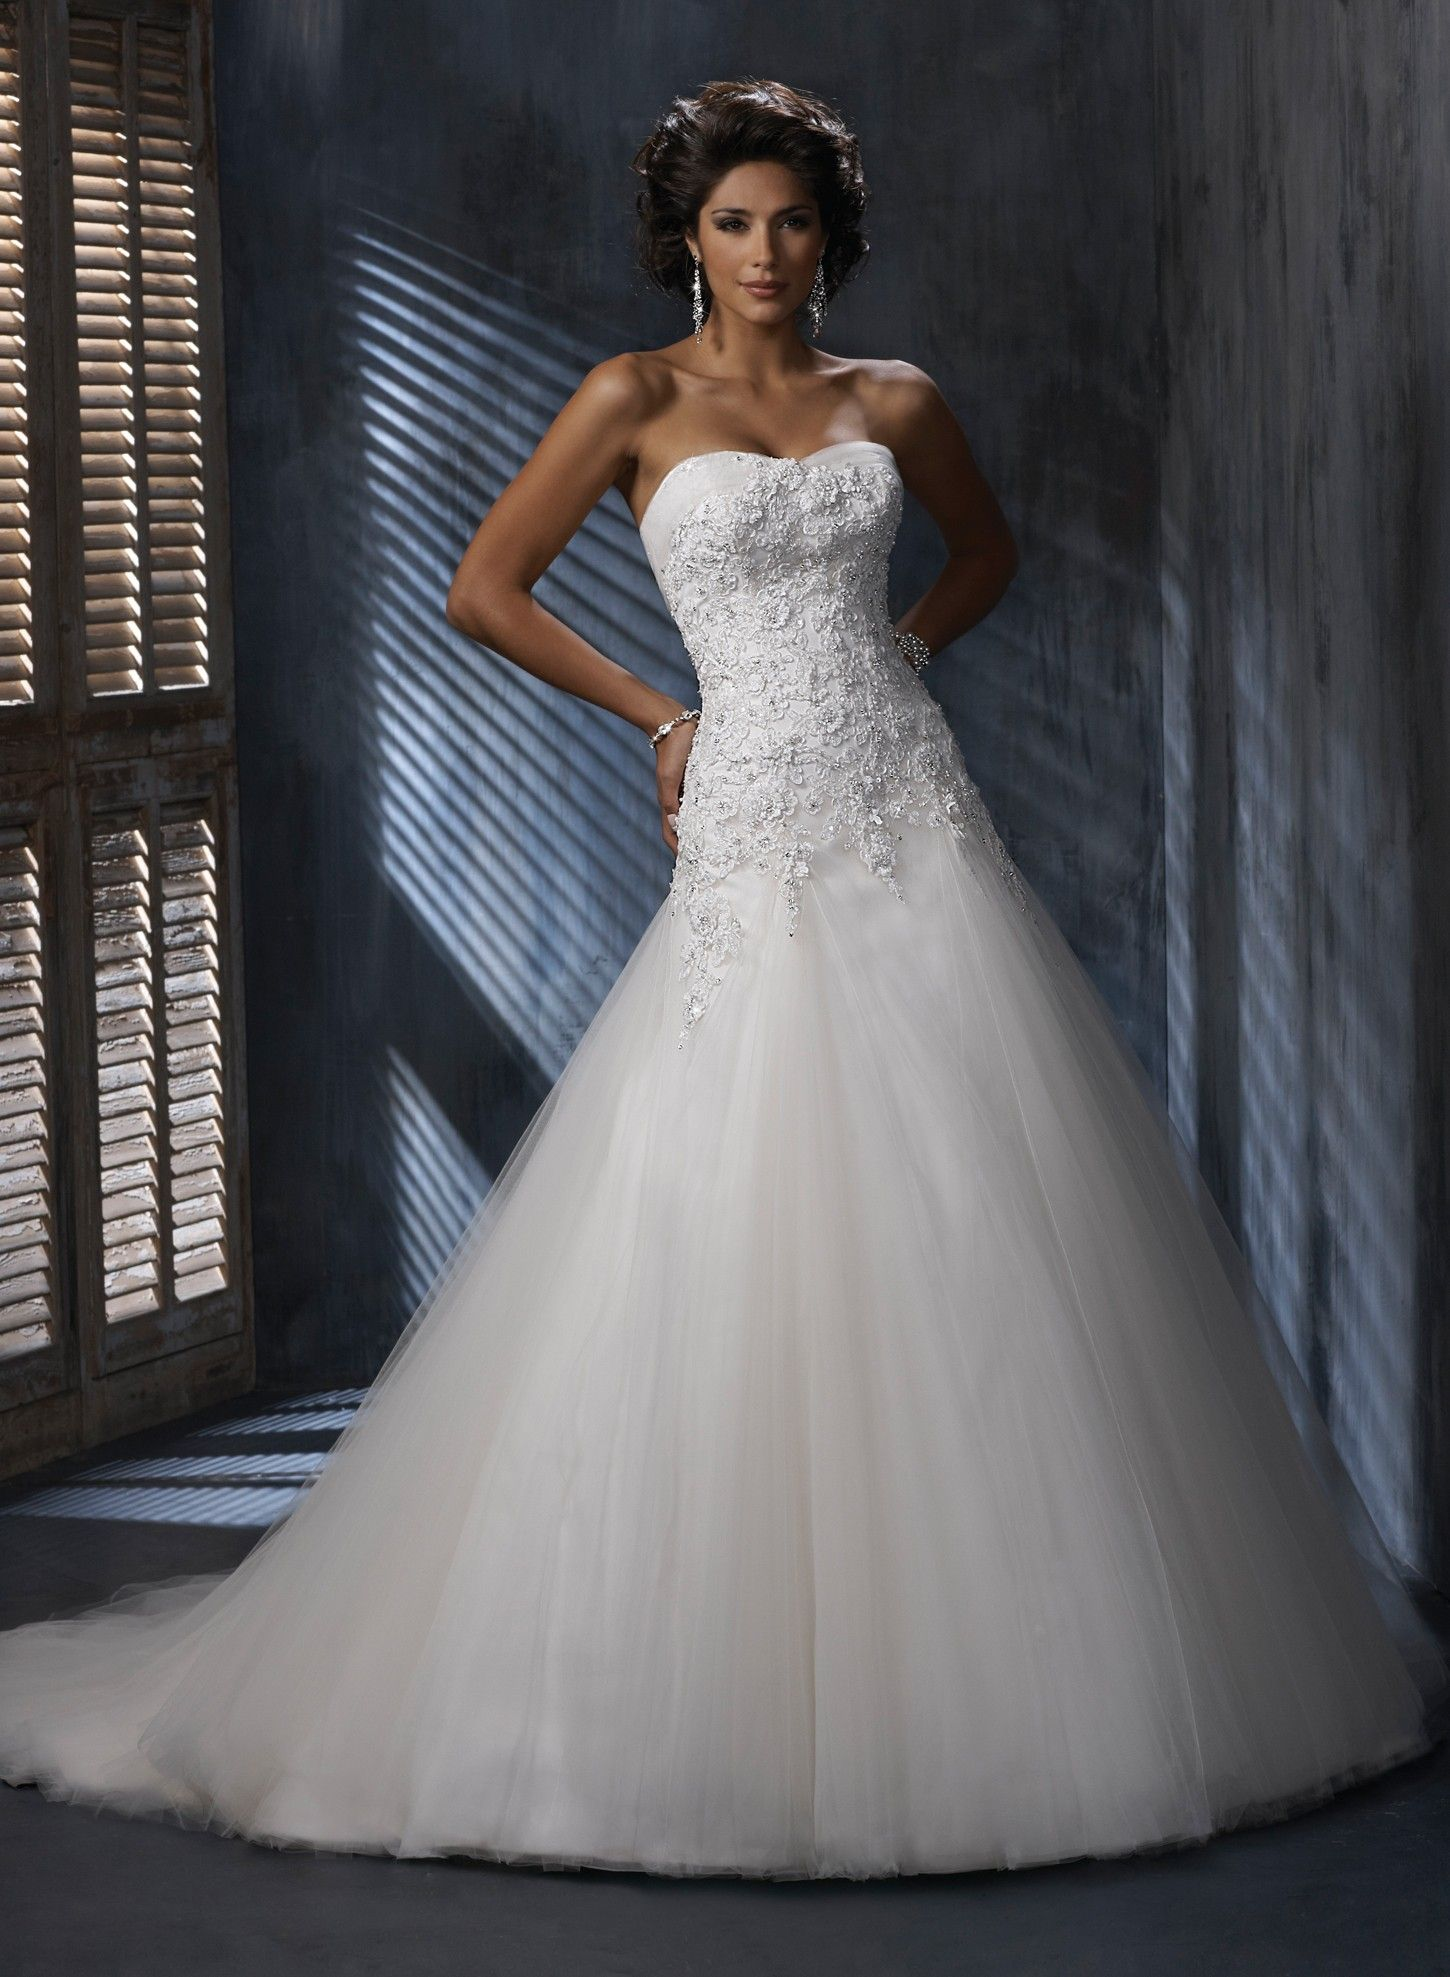 tulle and lace sweetheart a-line wedding dress   Sangmaestro ...